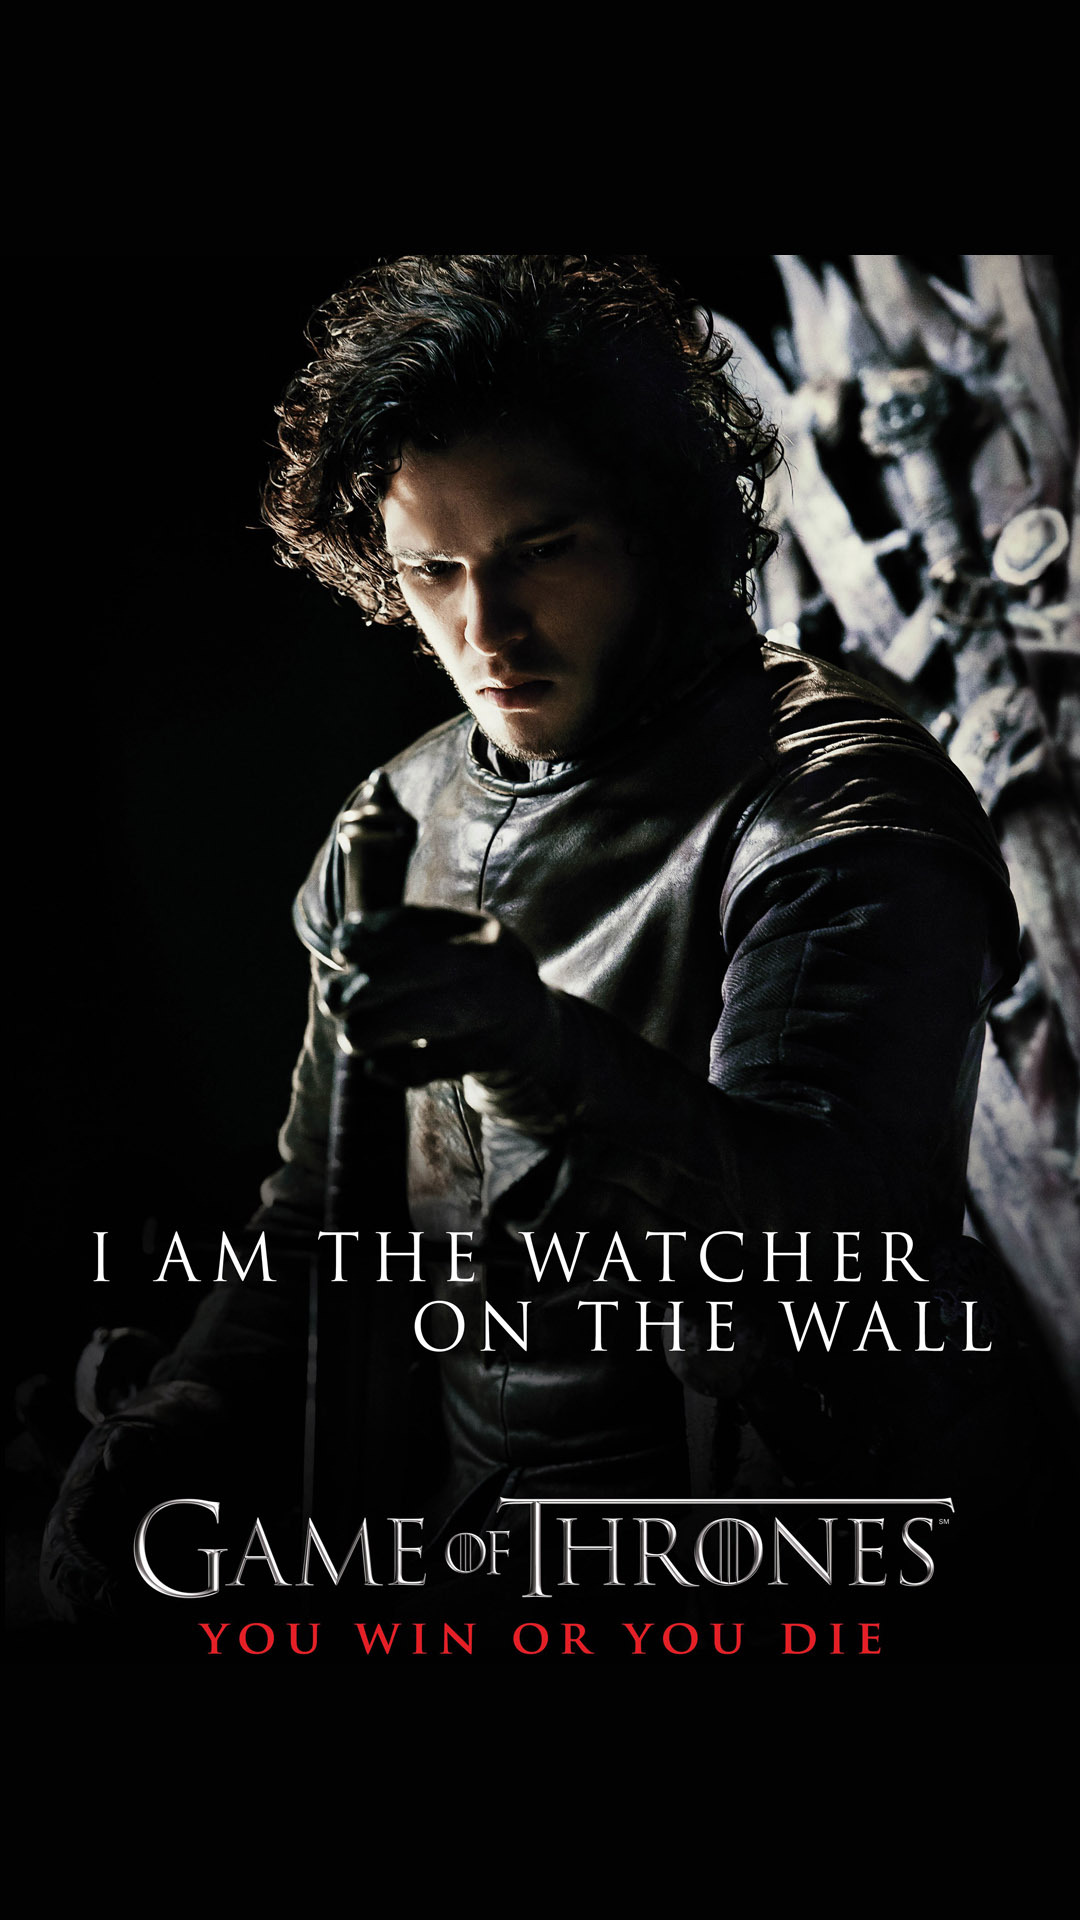 Jon Snow Alive - Game Of Thrones Season 1 Character Posters , HD Wallpaper & Backgrounds